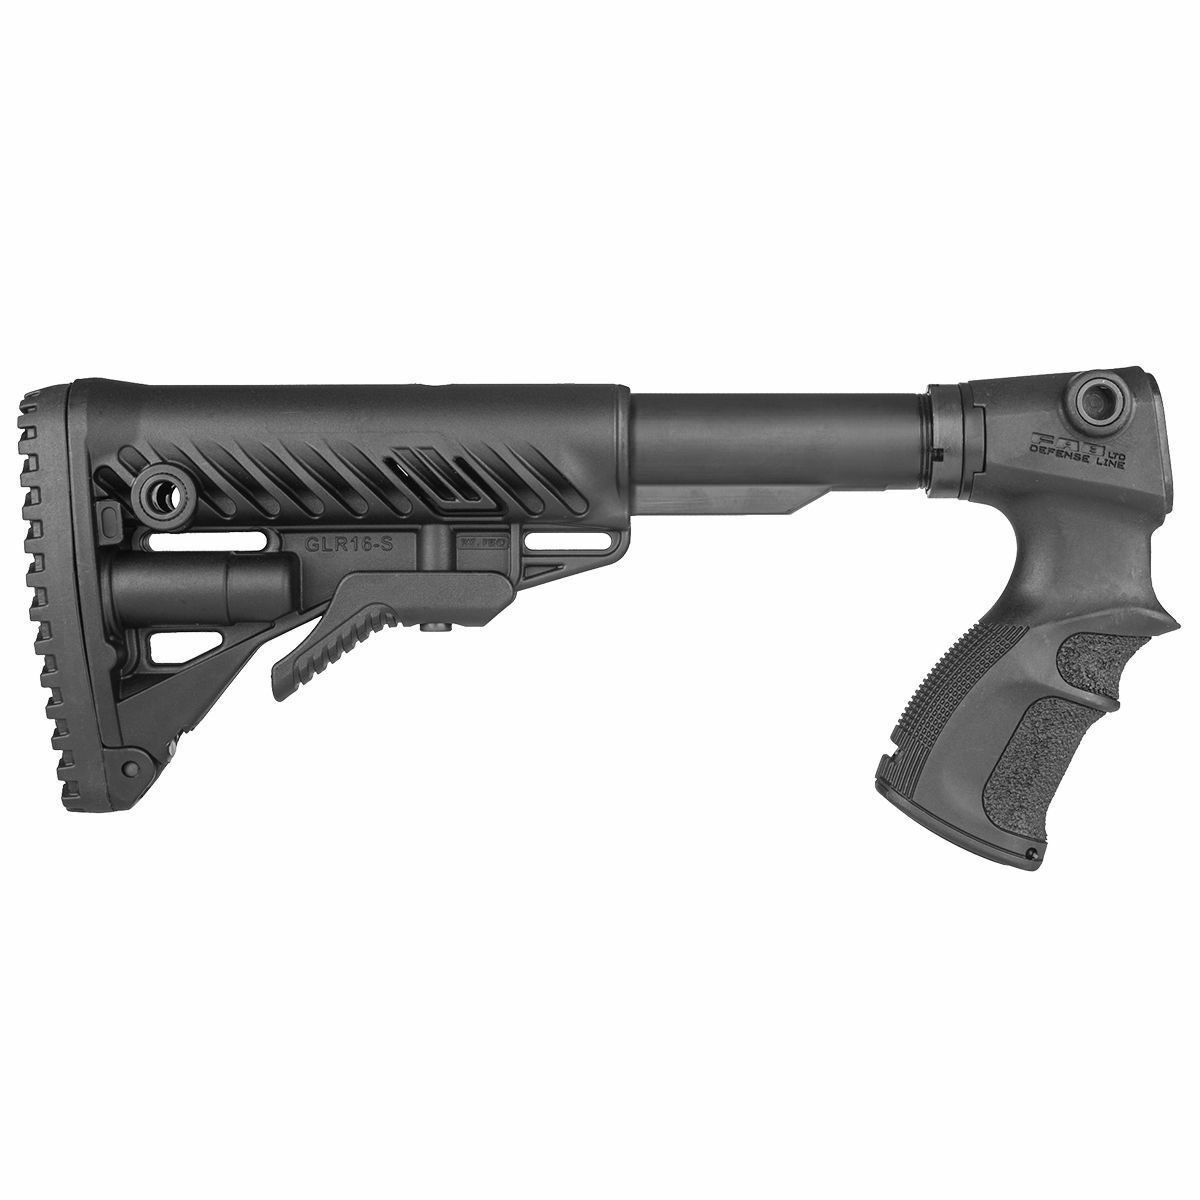 FAB Defense REMINGTON 870 Plegable Stock Culata (B709A) AGR870 FK requerido